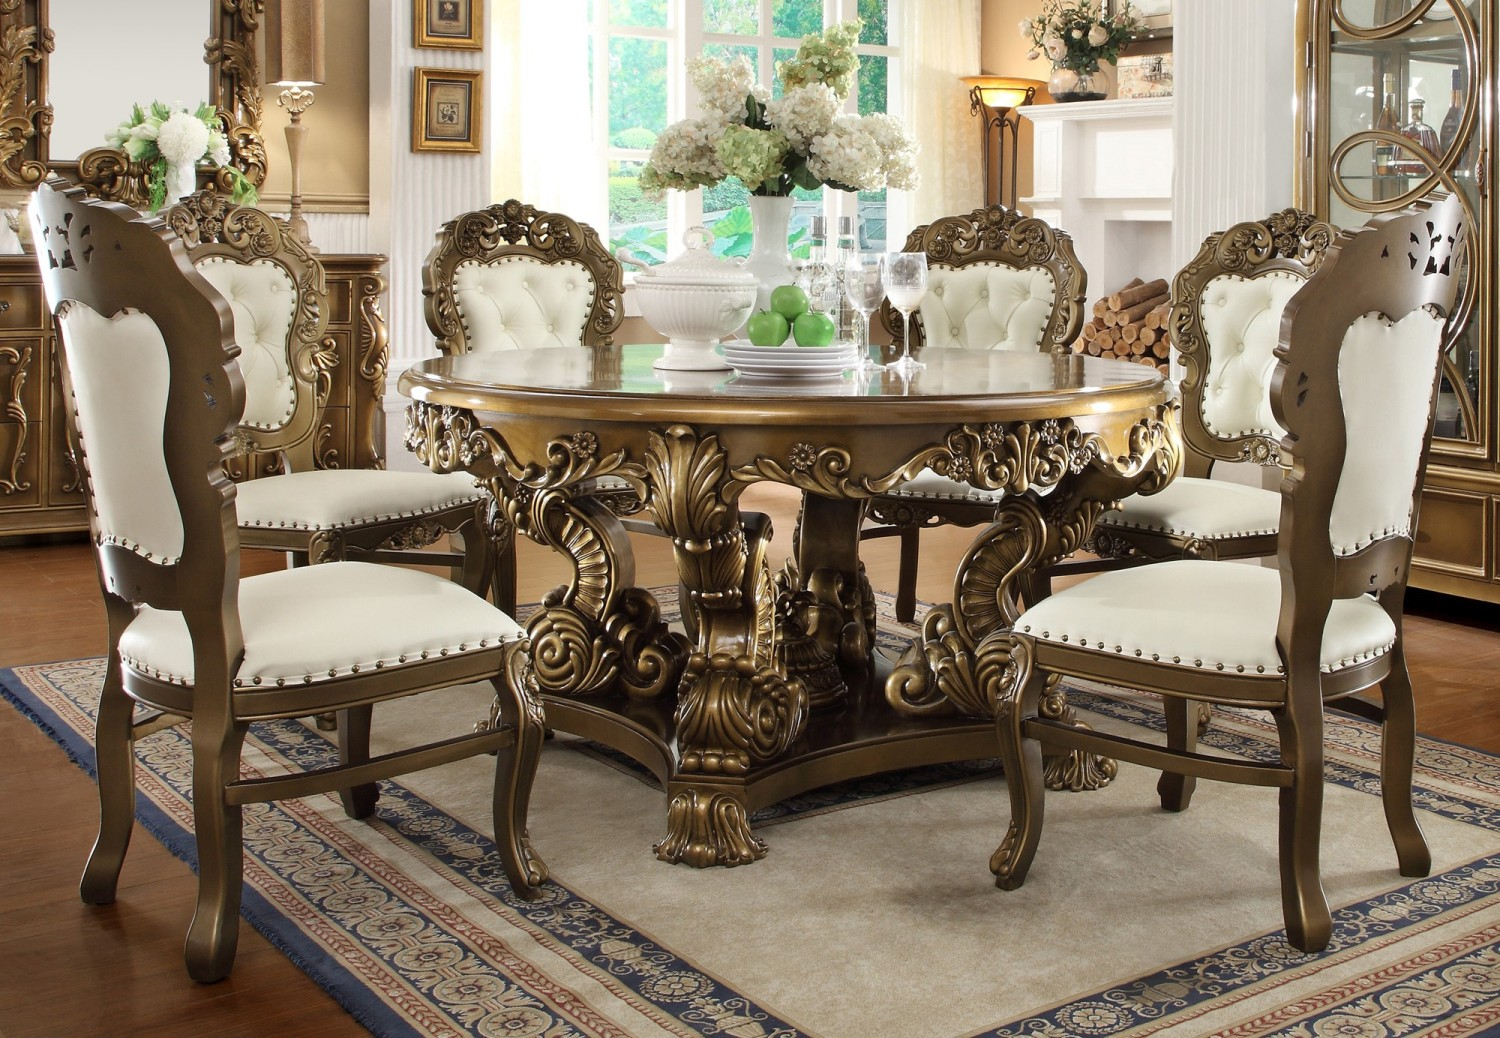 Opting for a dining room set constructive ideas 15 for Dining room set ideas